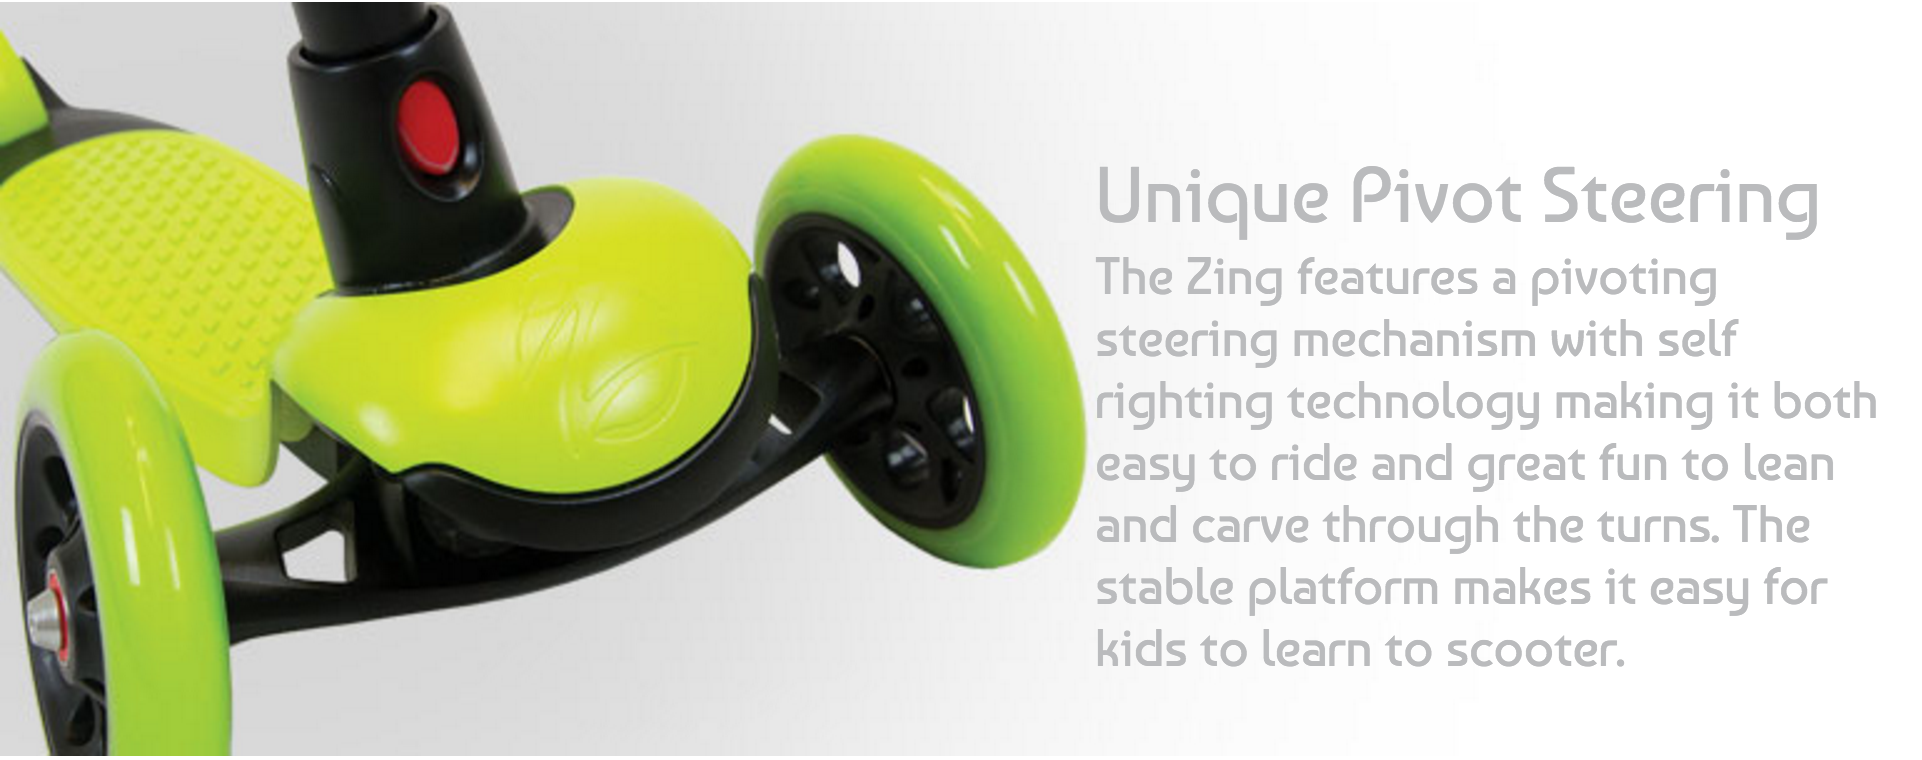 Zycom Zing 3 Wheel Kick Scooter for children Feature 1